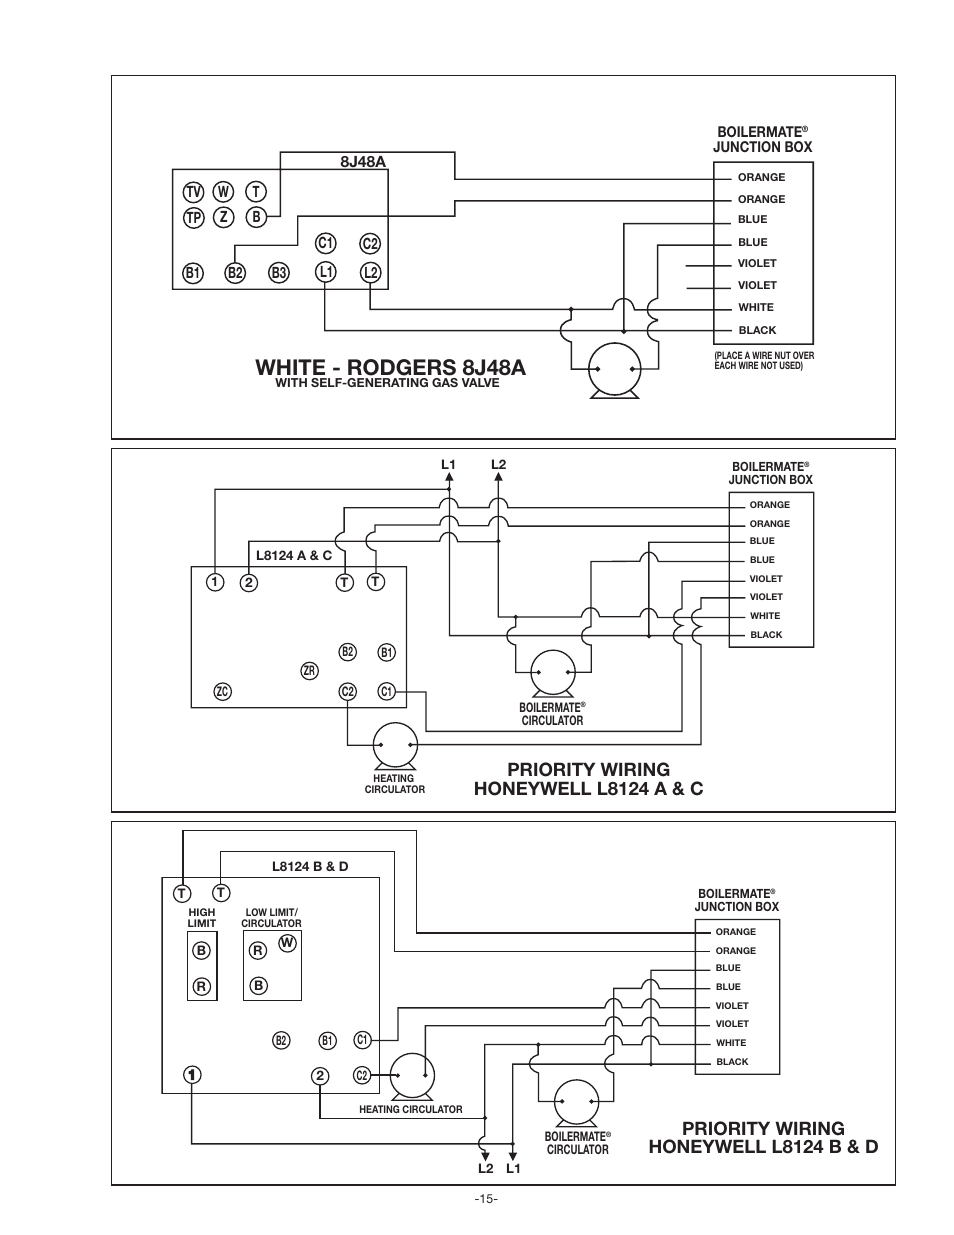 Amtrol Wiring Diagram Archive Of Automotive Aquastat L8124a White Rodgers 8j48a Priority Honeywell L8124 A C Rh Manualsdir Com